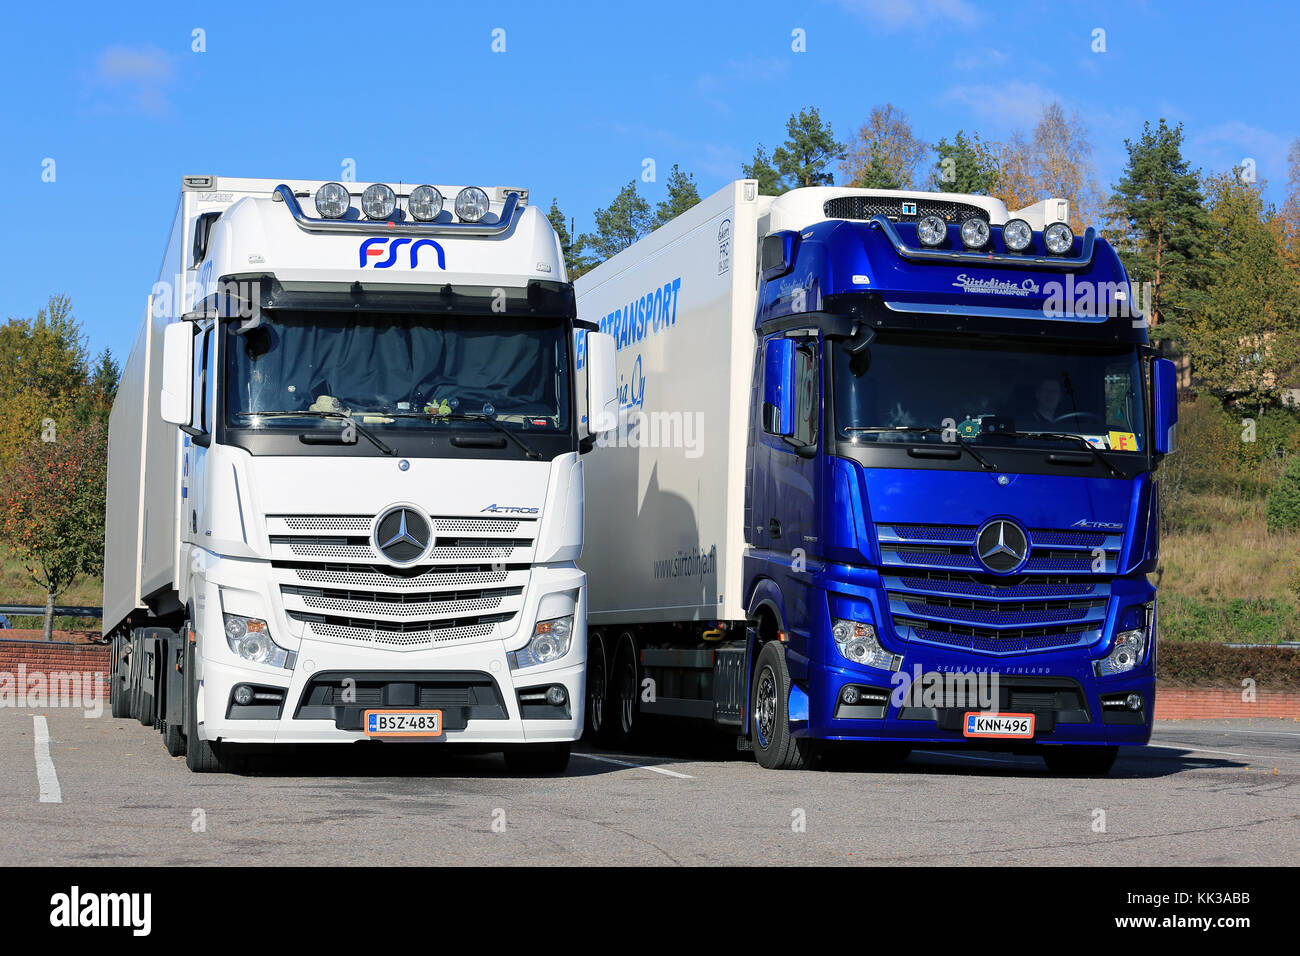 mercedes benz actros stock photos mercedes benz actros stock images alamy. Black Bedroom Furniture Sets. Home Design Ideas